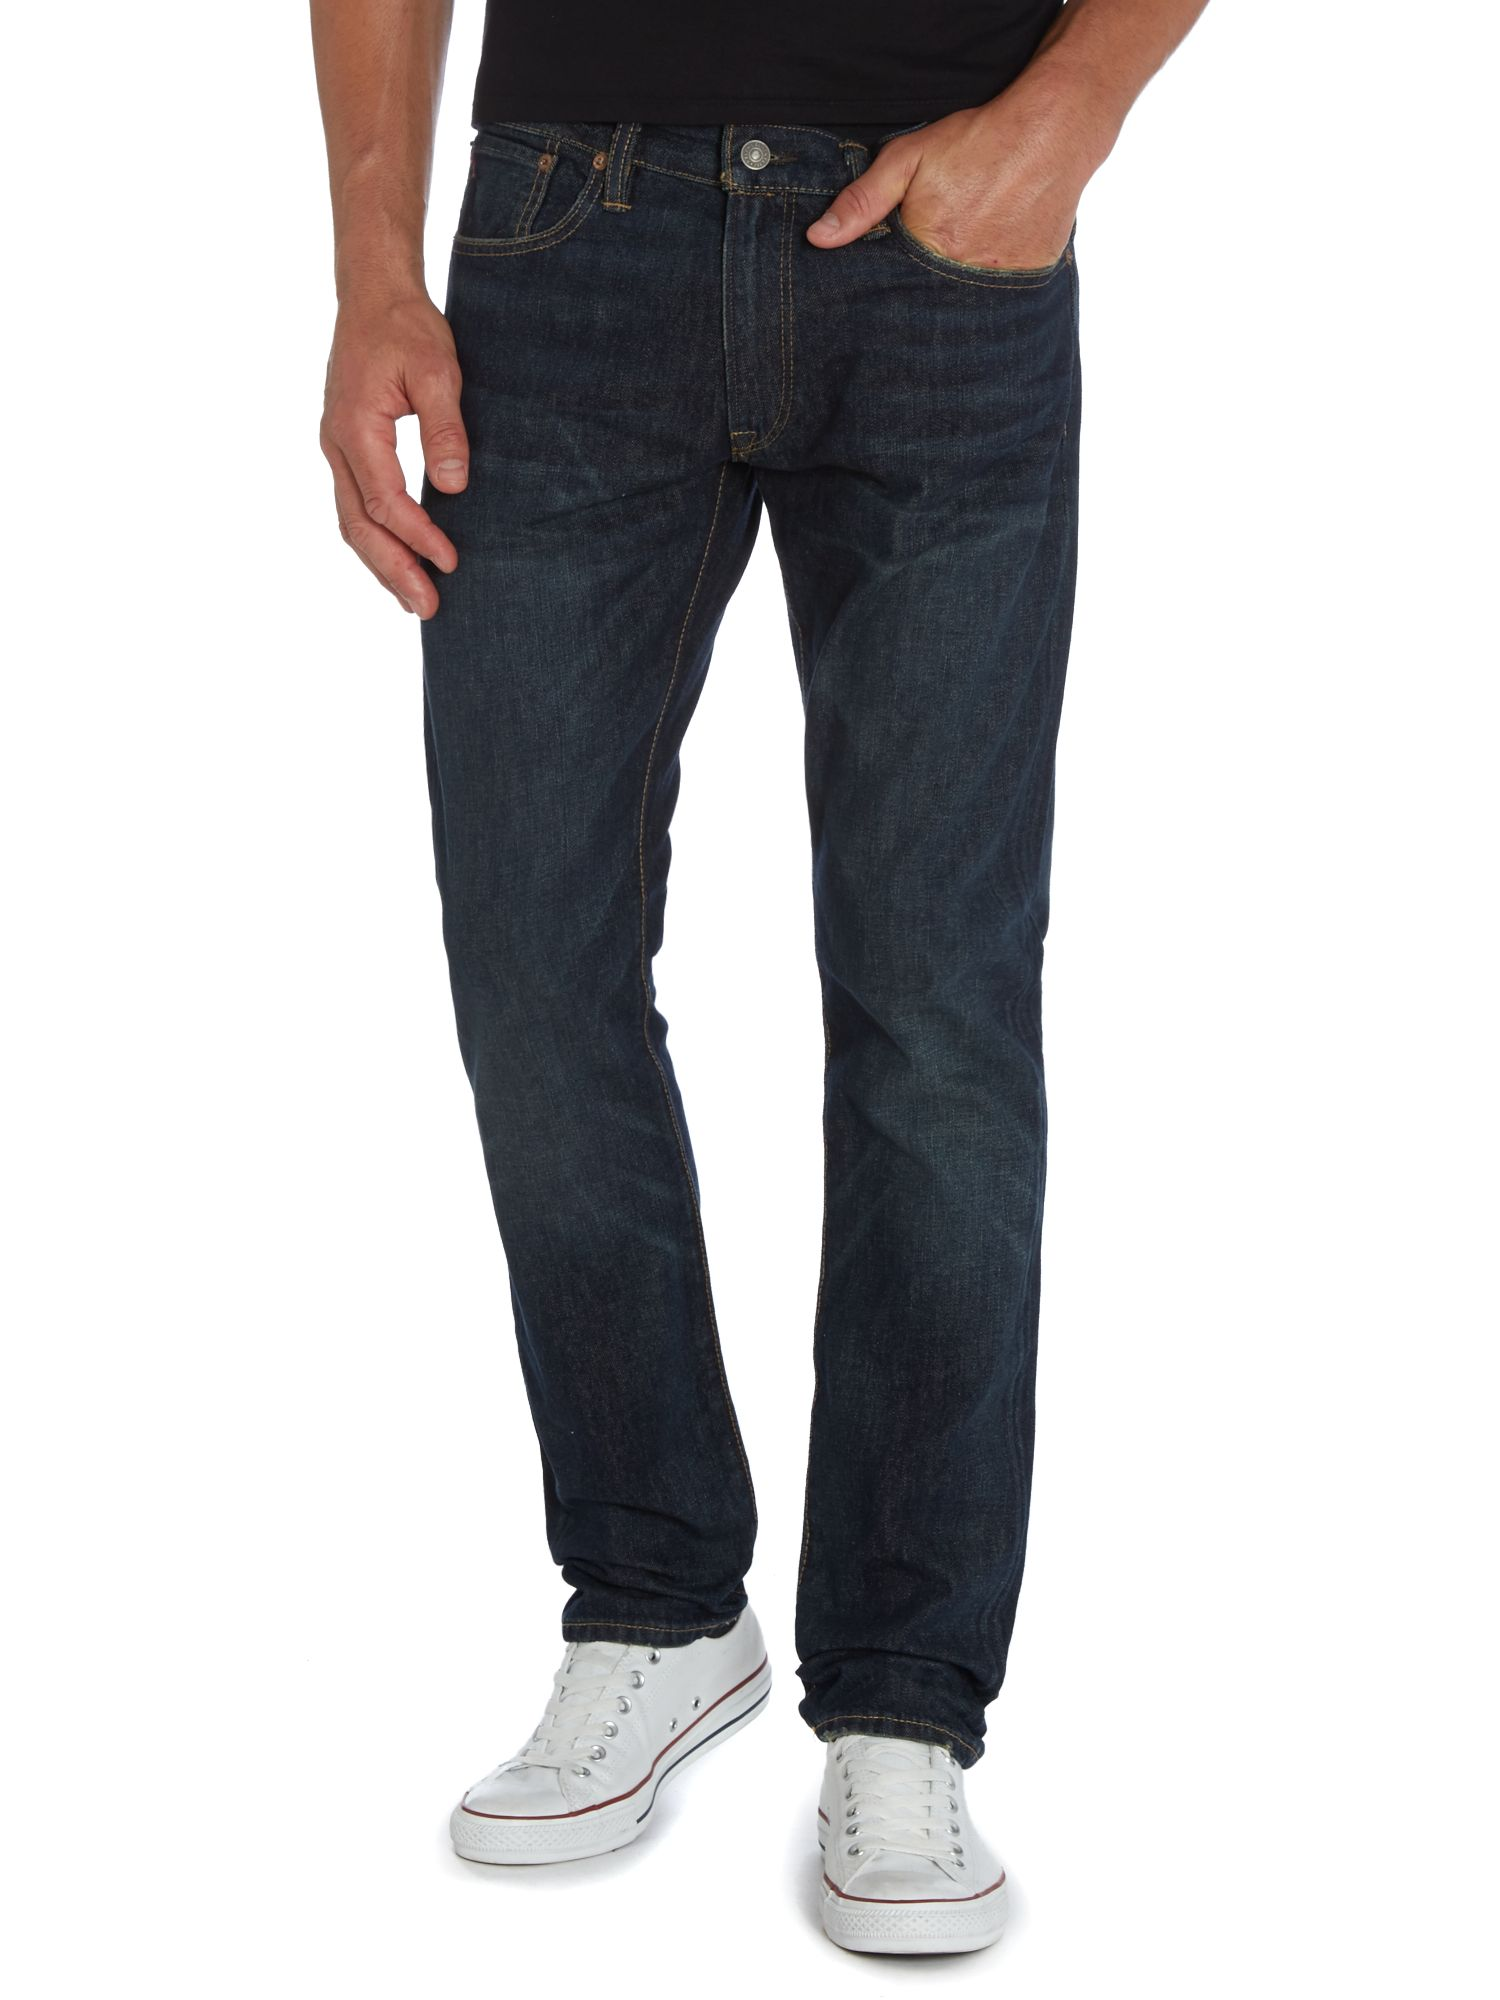 Slim fit sullivan jean